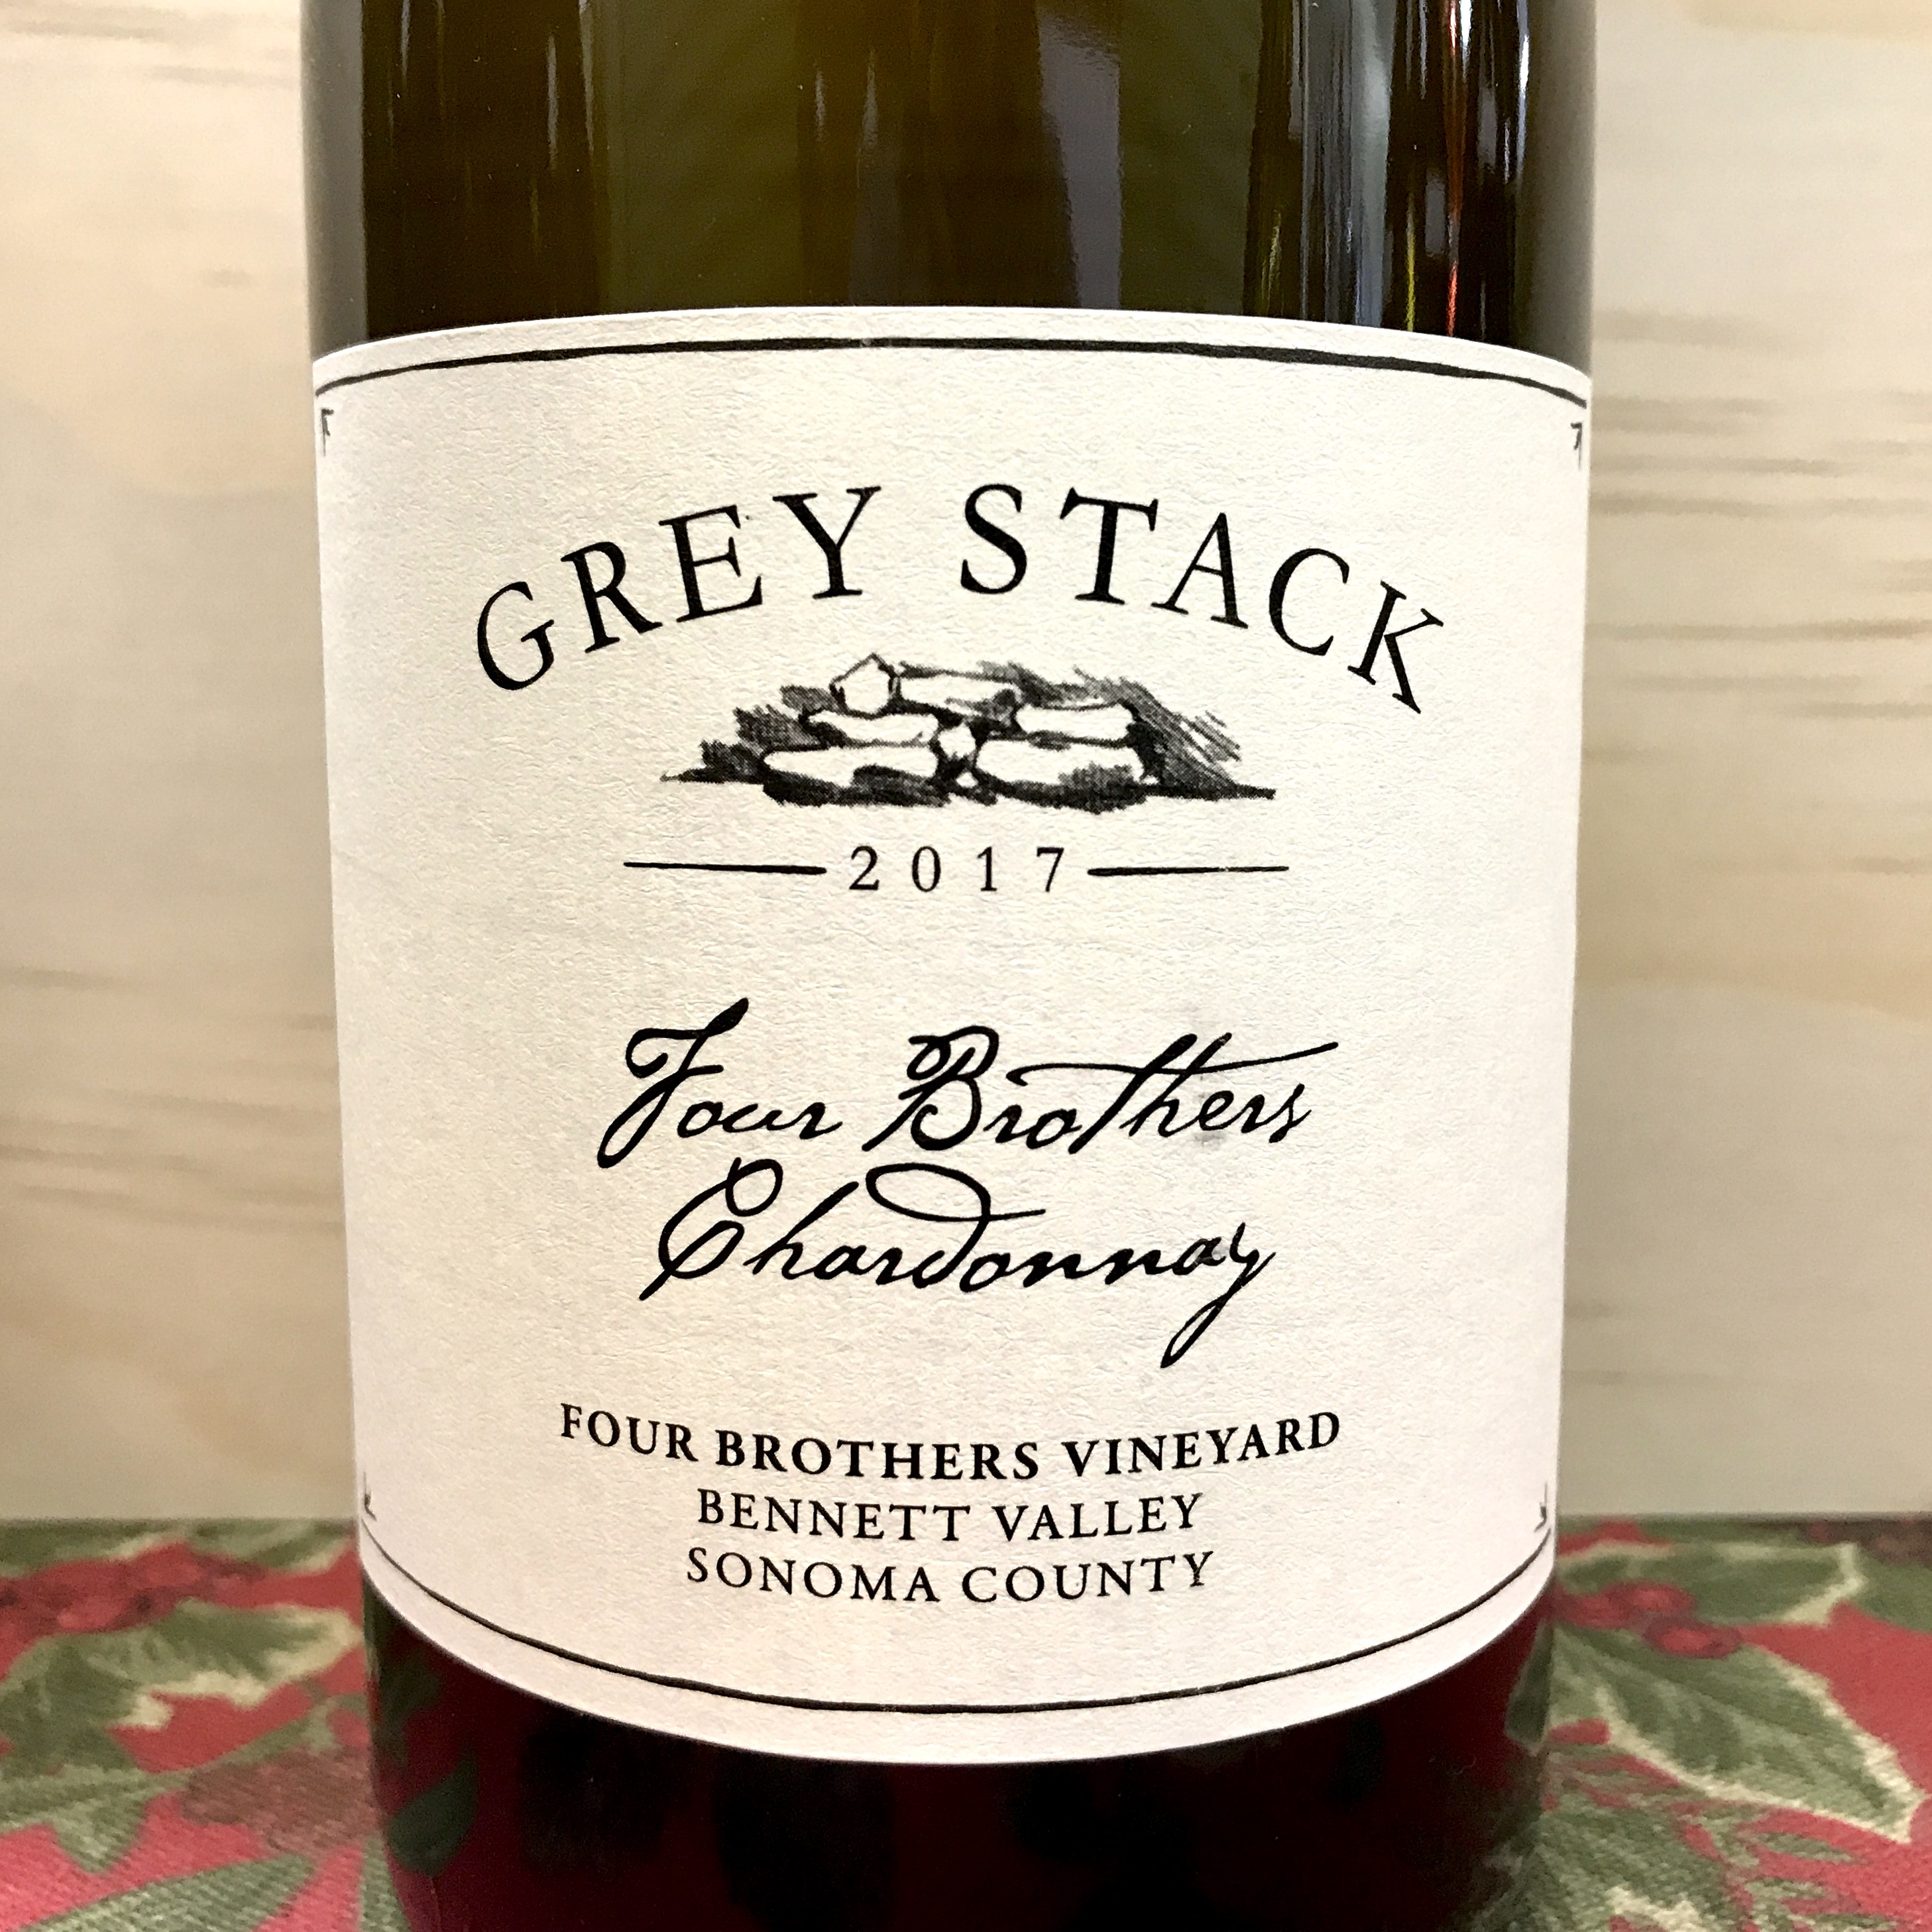 Grey Stack Four Brothers Chardonnay Bennet Valley 2017